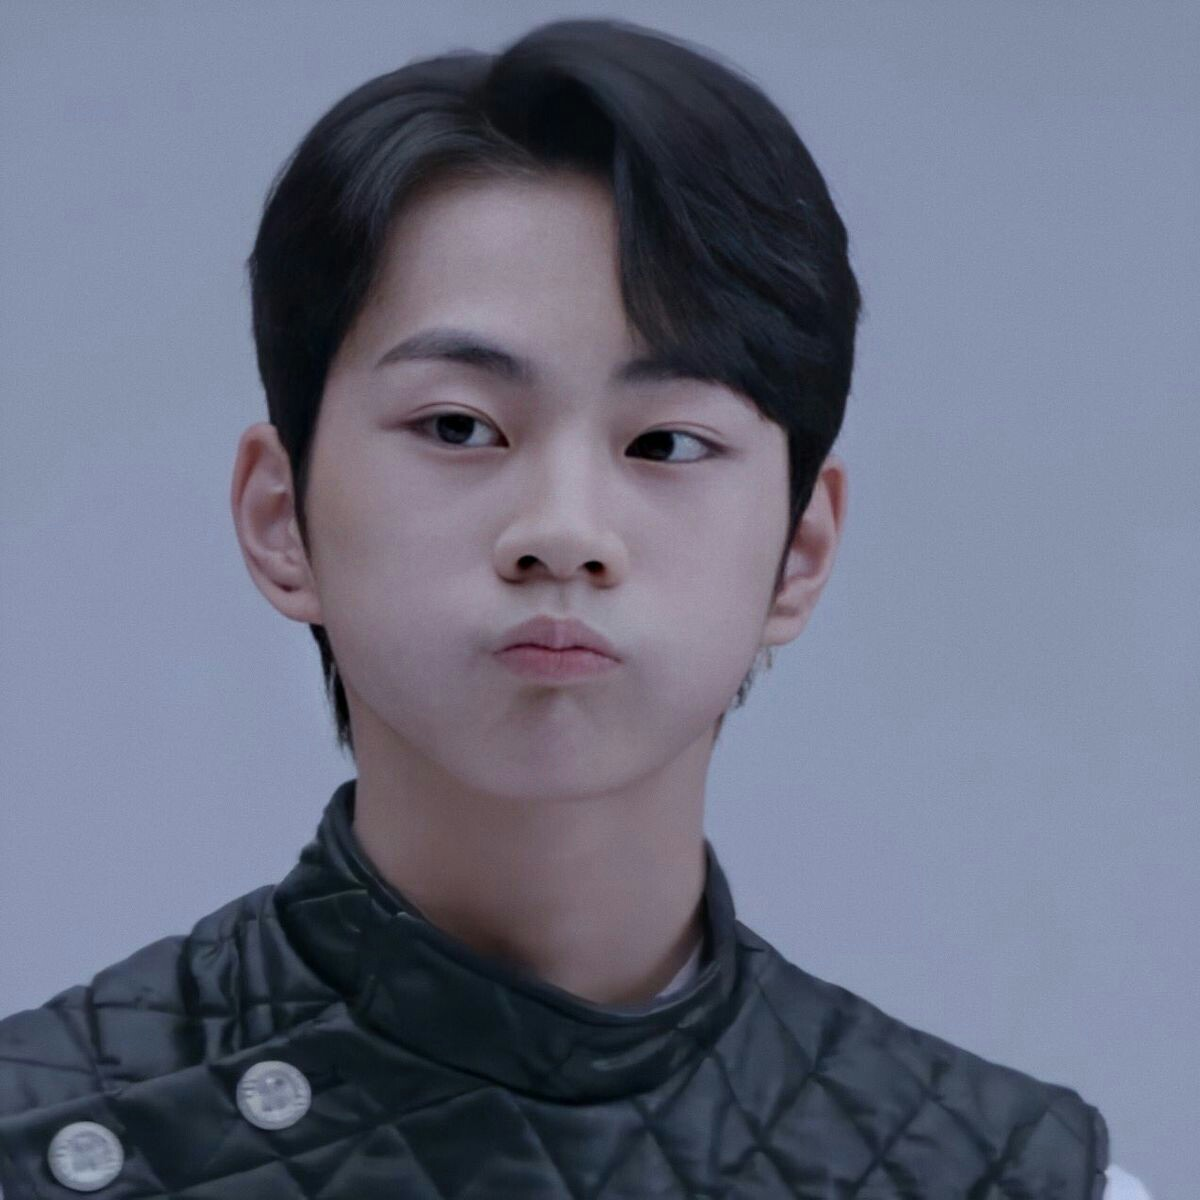 To jungwon: Can you remake this please huhu, you're so cuteeee!!! #AskENHYPEN